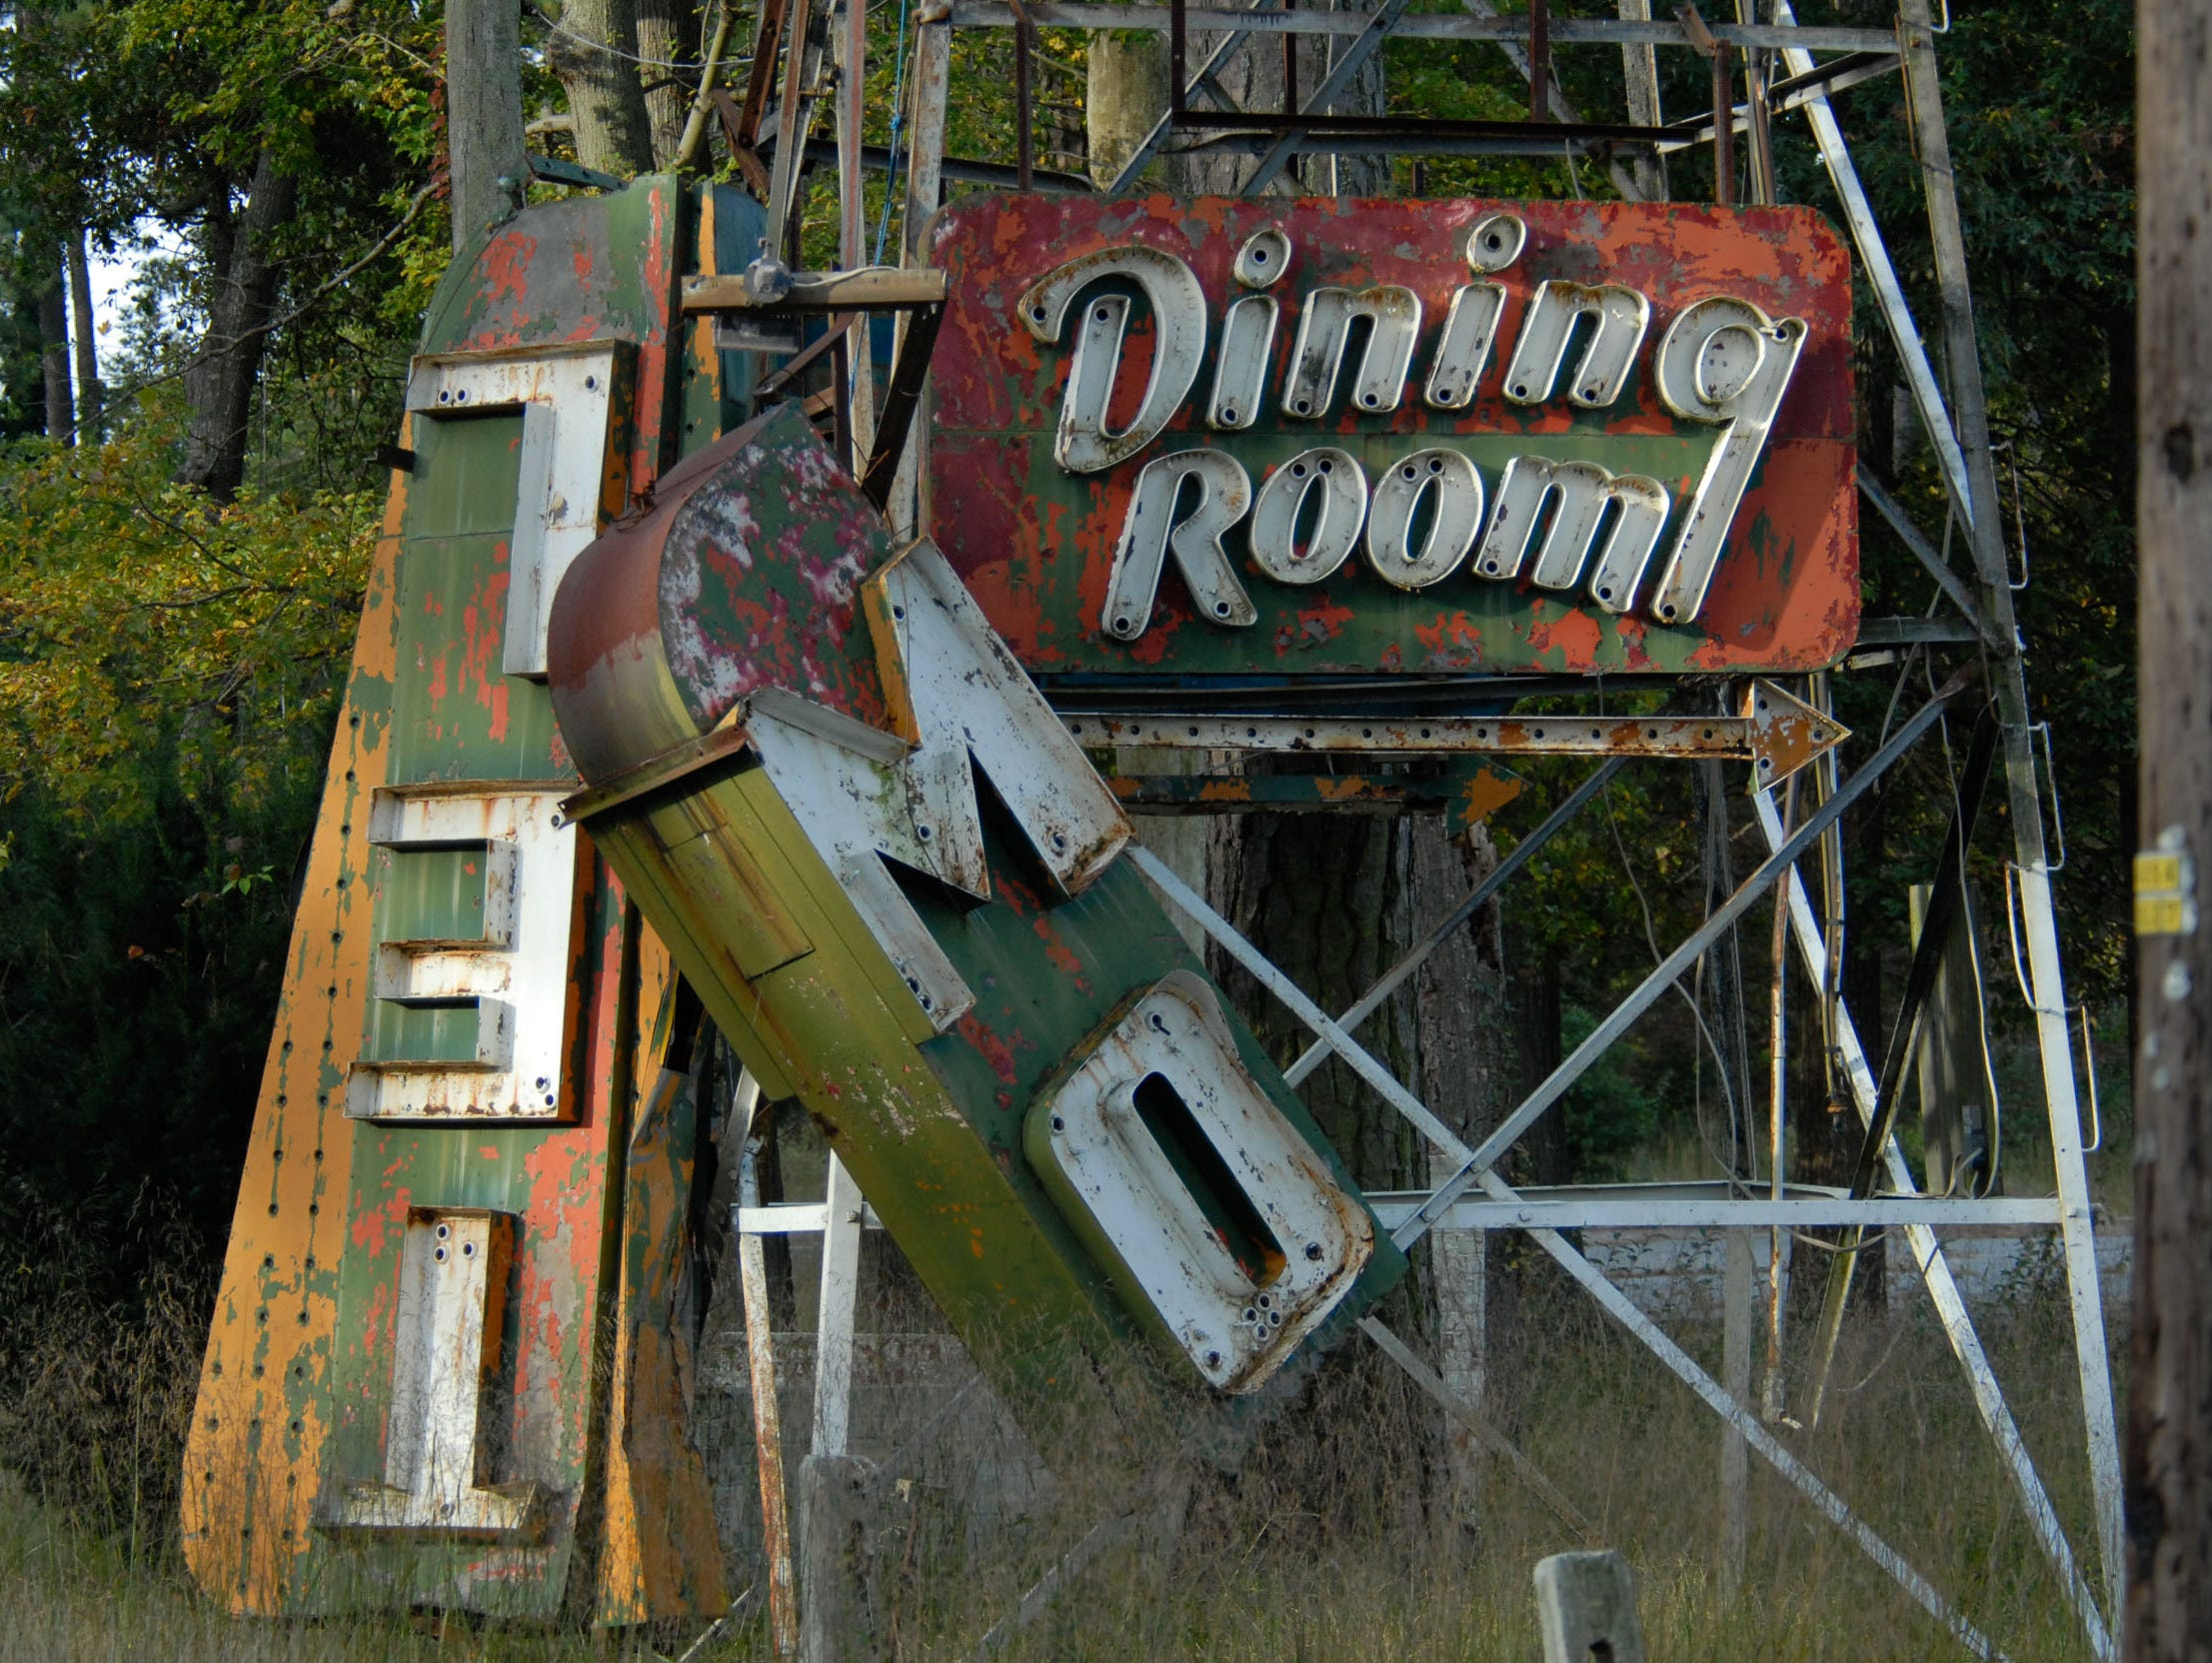 A sign at the Whispering Pines Motel in Tasley is broken and the building itself is in disrepair. A local resident brought up the problem of the building and it being an eyesore so close to U.S. Route 13 Wednesday during an Accomack County Board of Supervisors meeting.